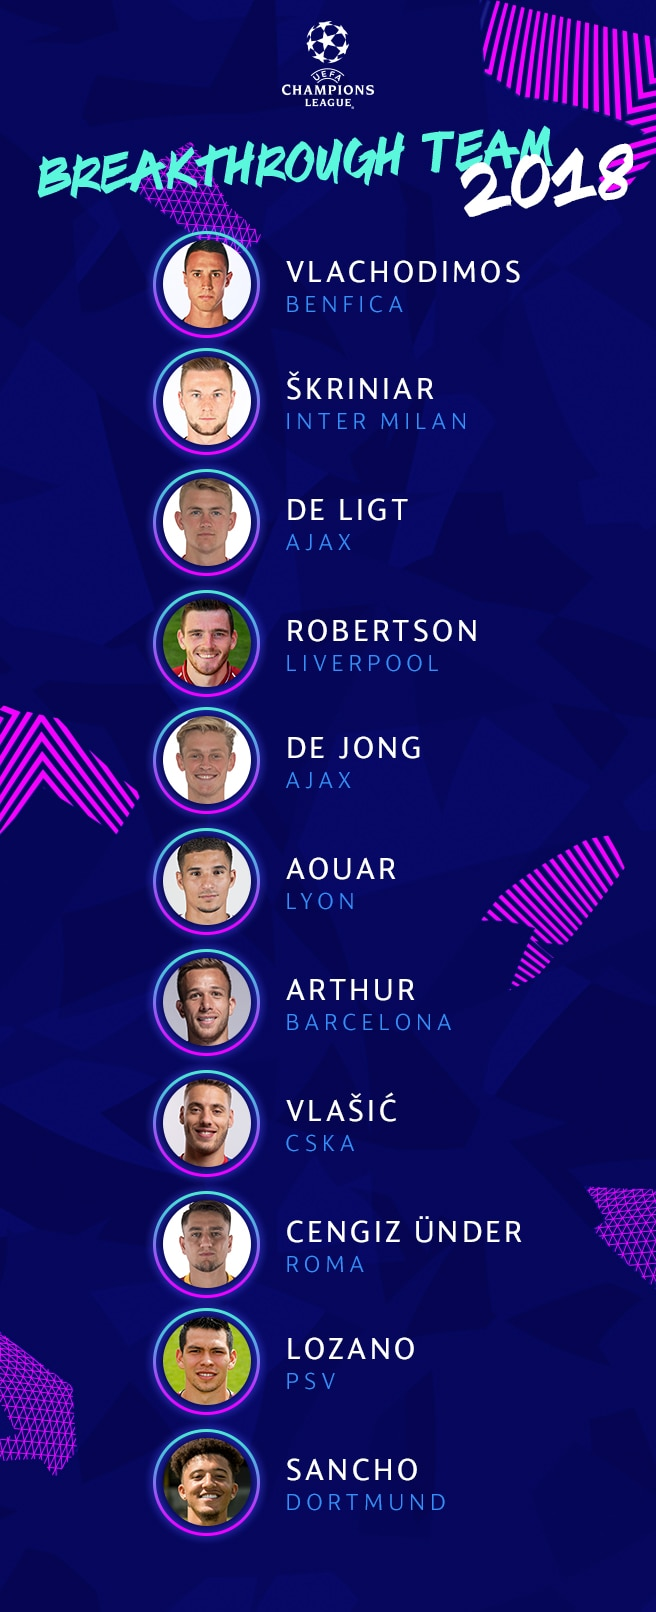 UEFA Champions League breakthrough team of 2018